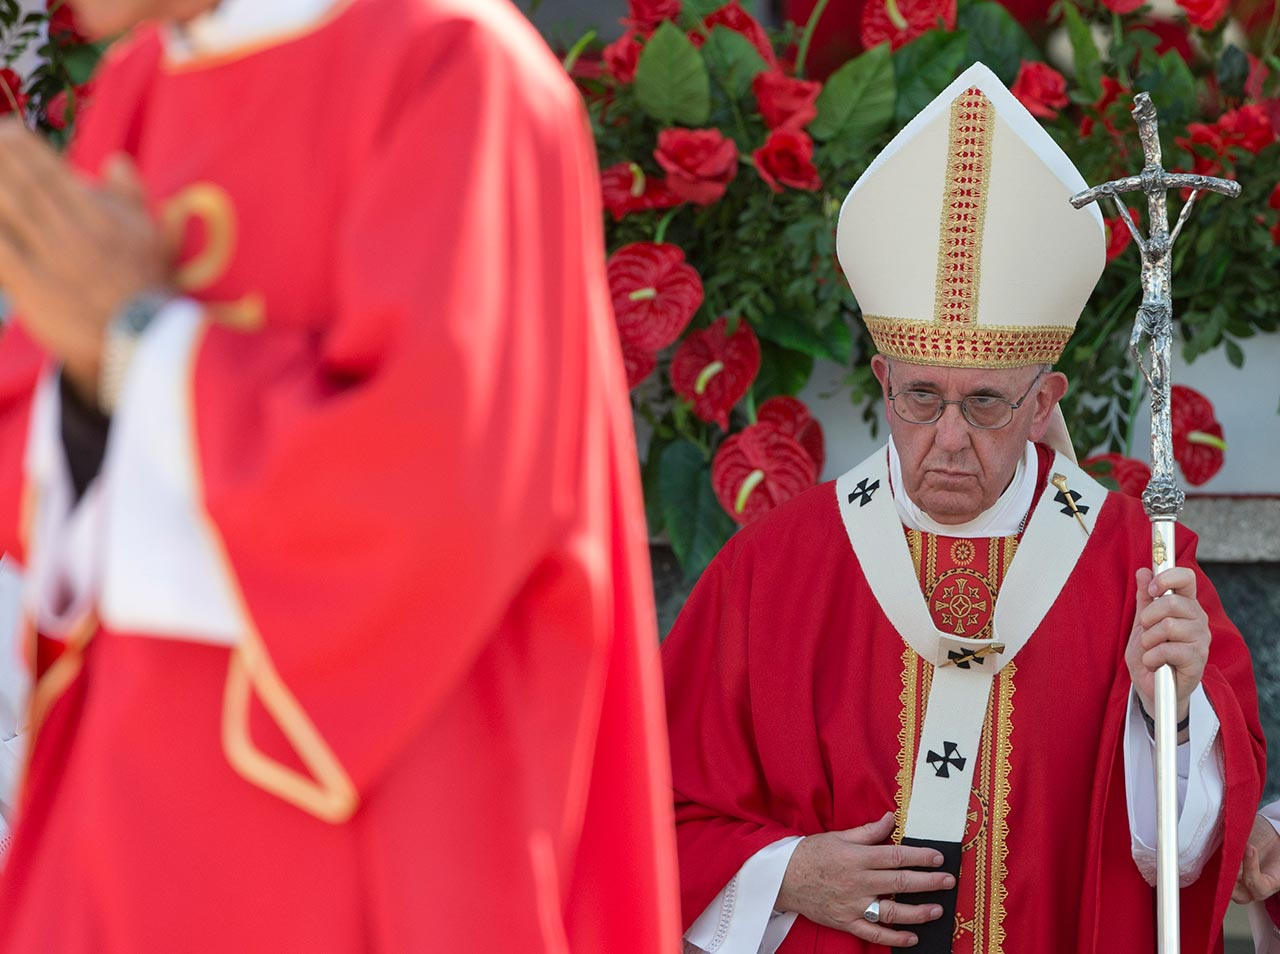 """<div class=""""meta image-caption""""><div class=""""origin-logo origin-image none""""><span>none</span></div><span class=""""caption-text"""">Pope Francis approaches the altar with his pastoral staff to celebrate Mass at the Plaza of the Revolution, in Holguin, Cuba, Monday, Sept. 21, 2015. (AP Photo/Alessandra Tarantino)</span></div>"""